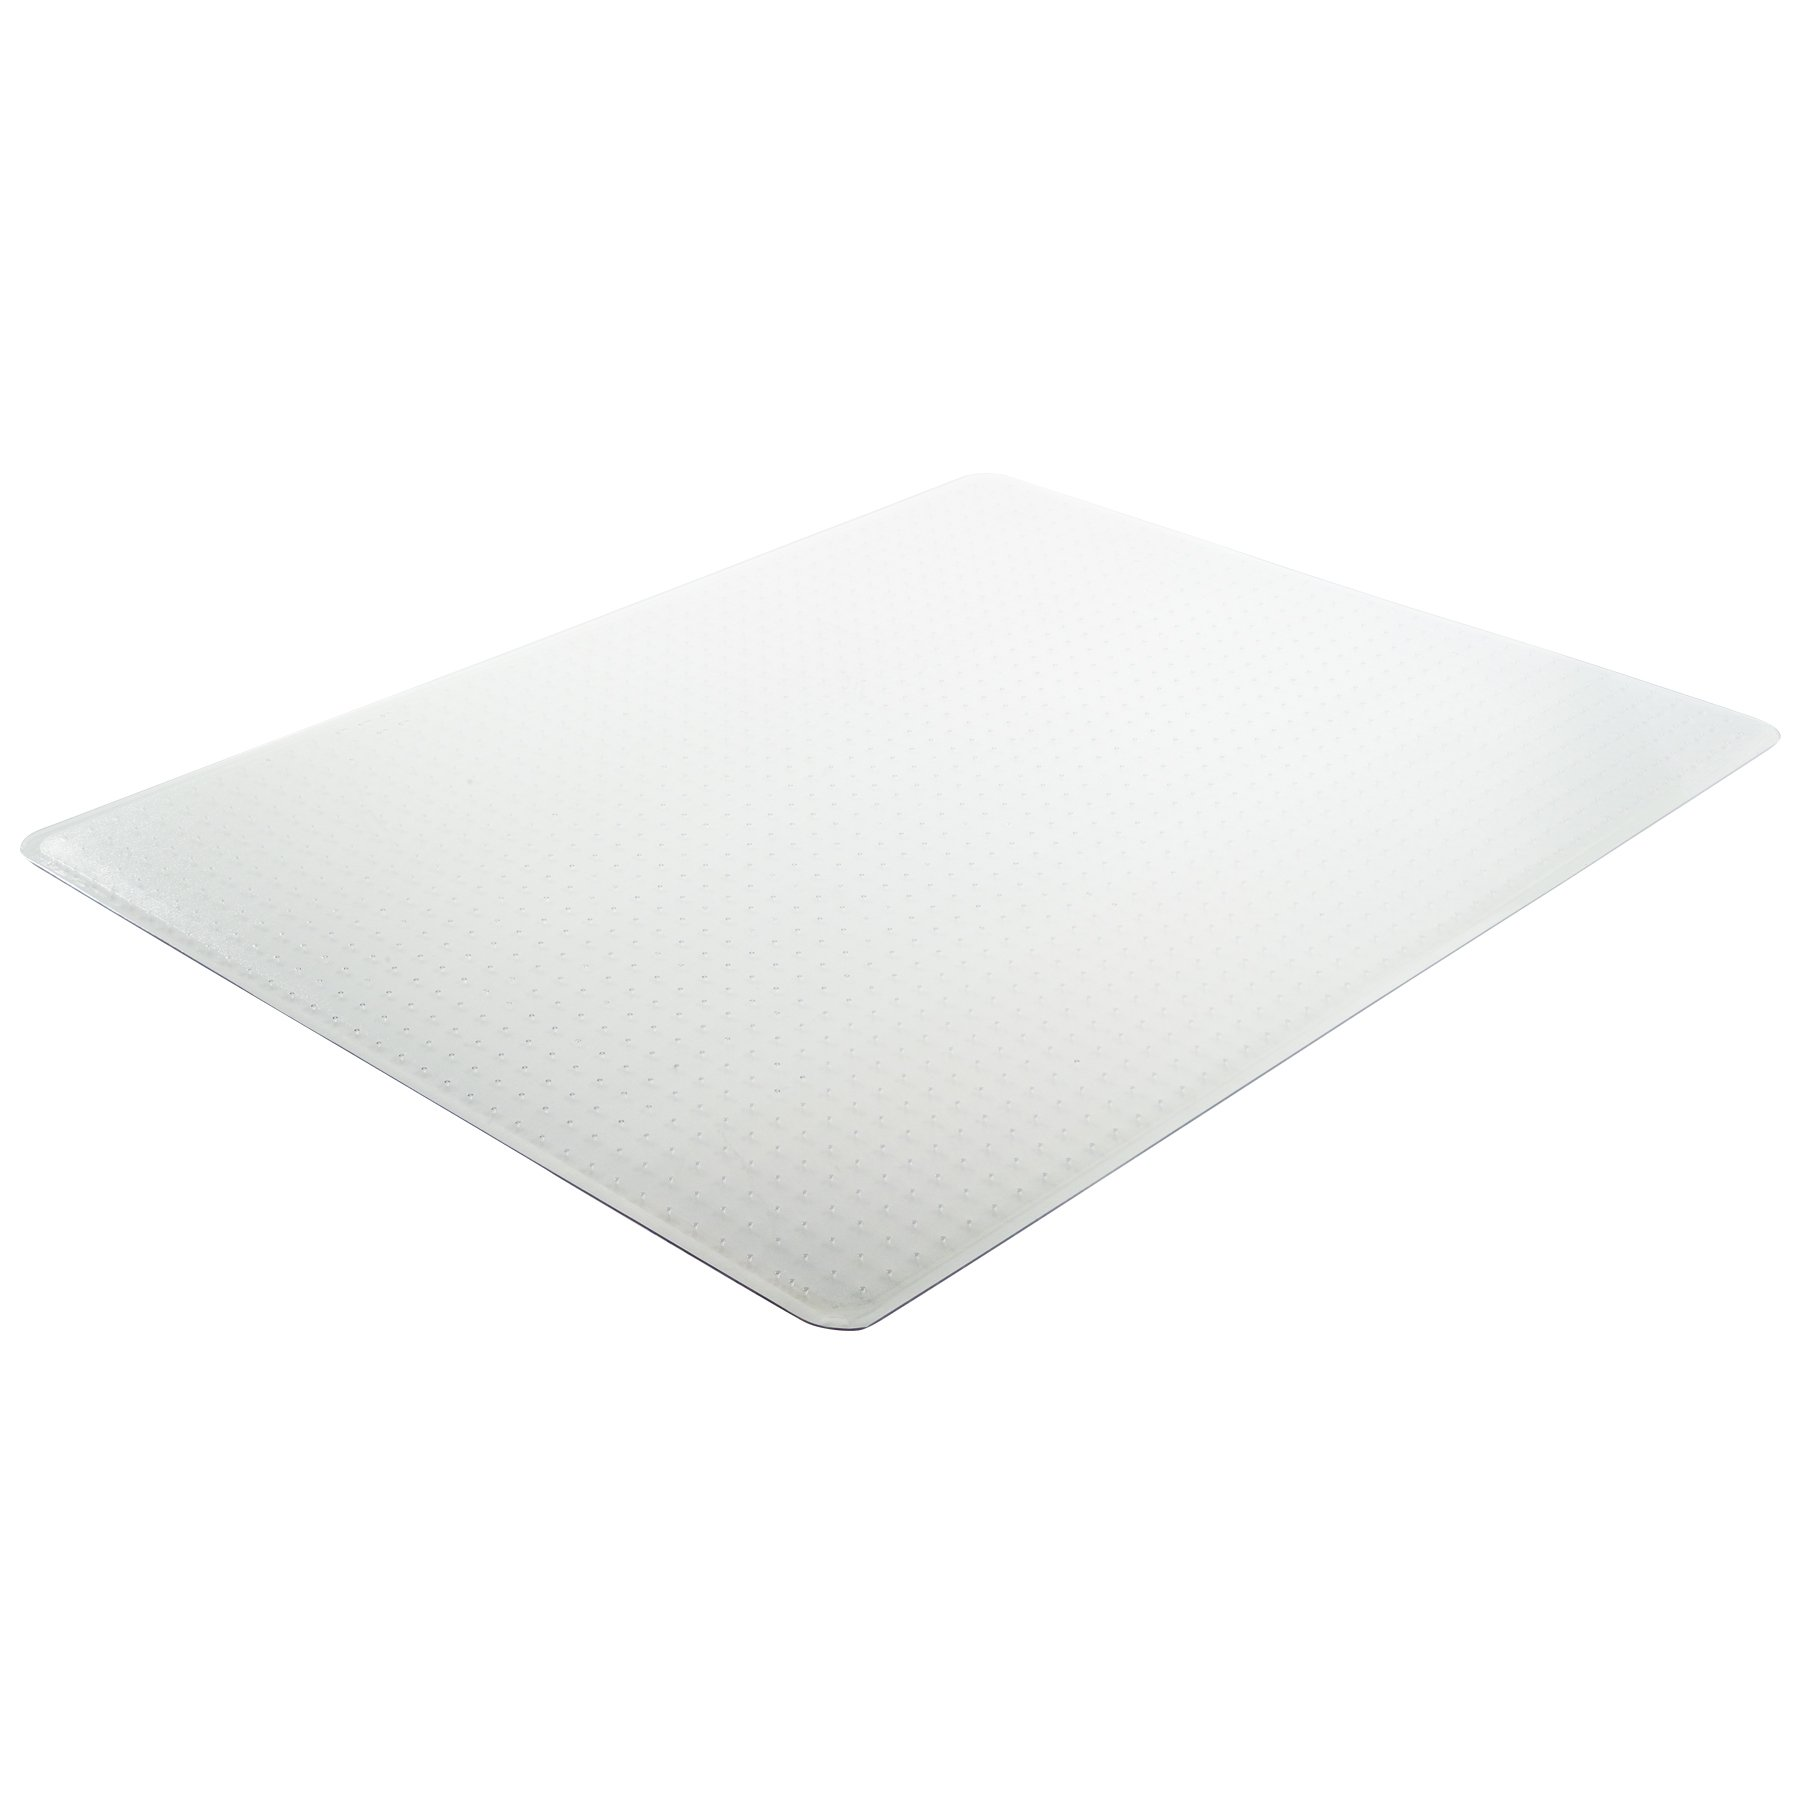 Deflecto SuperMat Clear Chair Mat, Medium Pile Carpet Use, Rectangle, Beveled Edge, 36 x 48 Inches (CM14143)